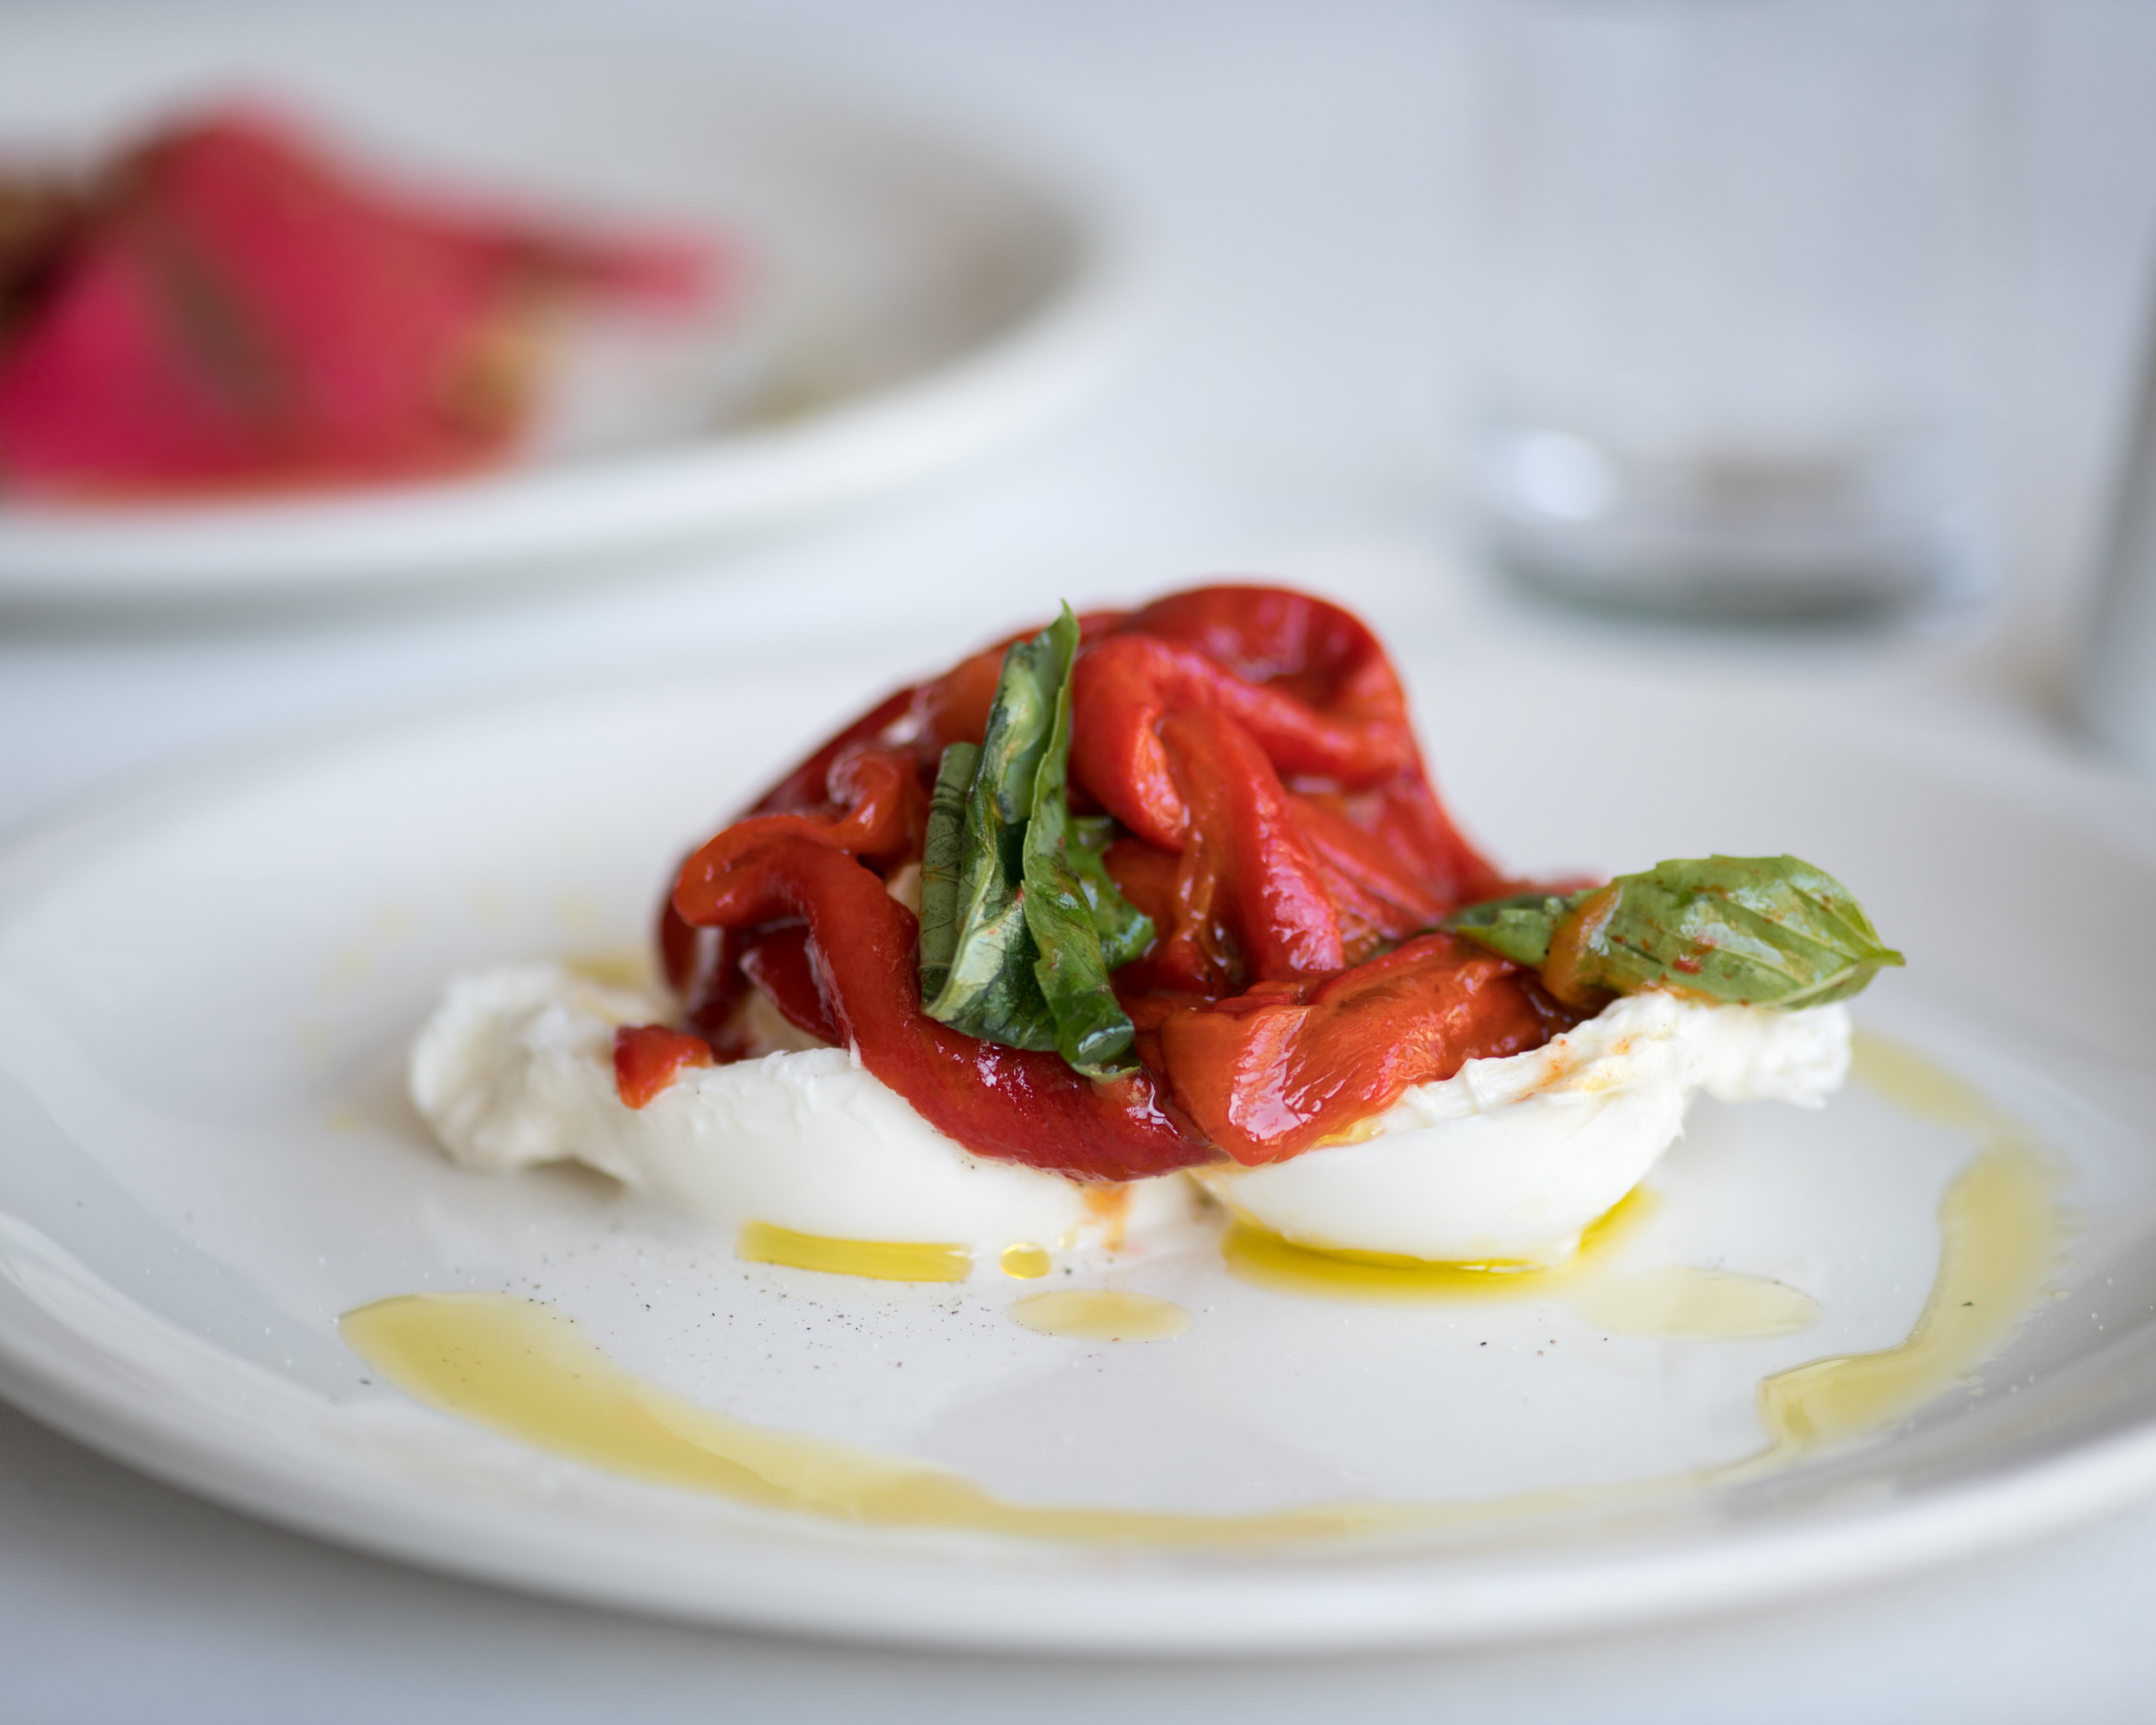 Burrata, with romano peppers and basil.